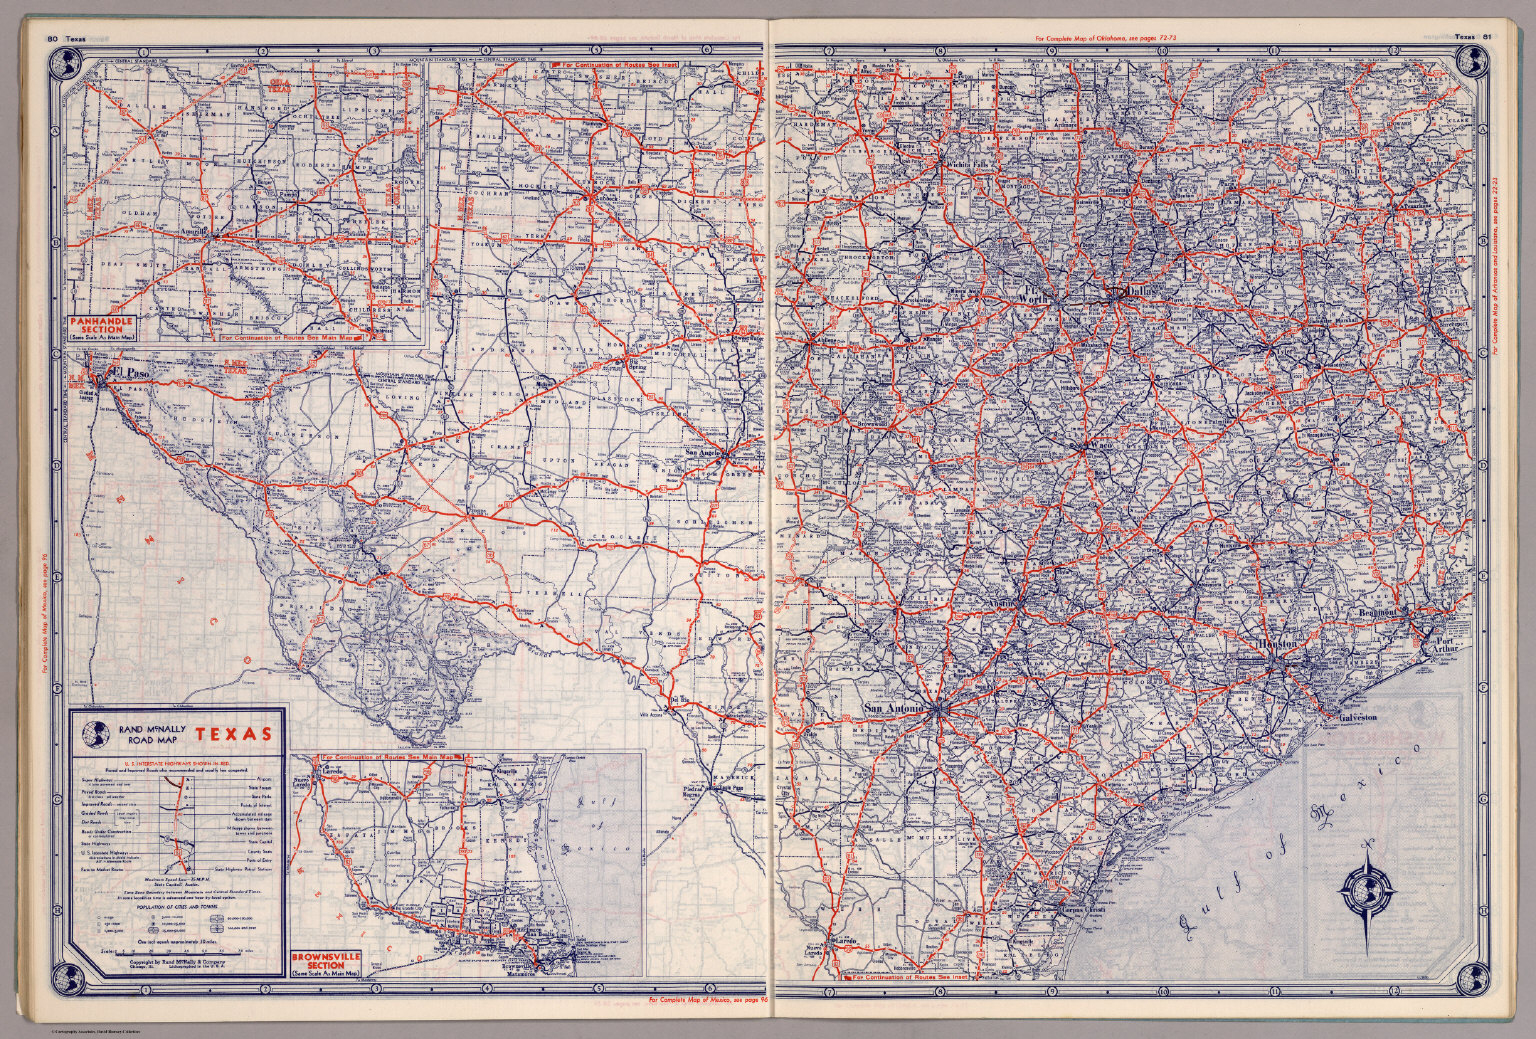 Rand Mcnally Road Map: Texas - David Rumsey Historical Map Collection - Rand Mcnally Texas Road Map